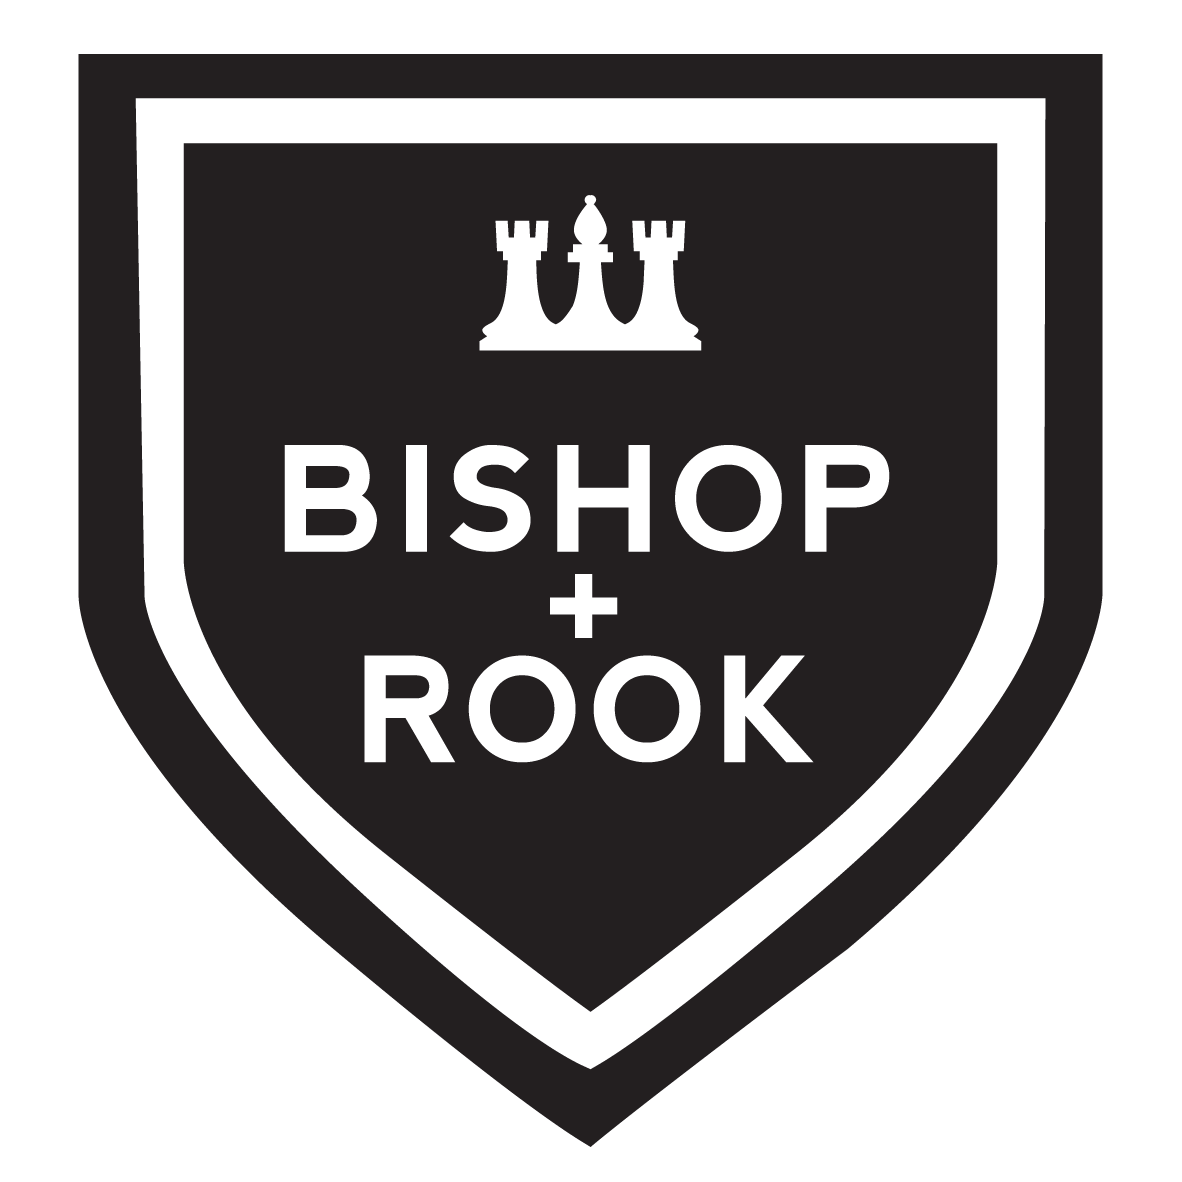 Bishop+Rook - Defender Importing